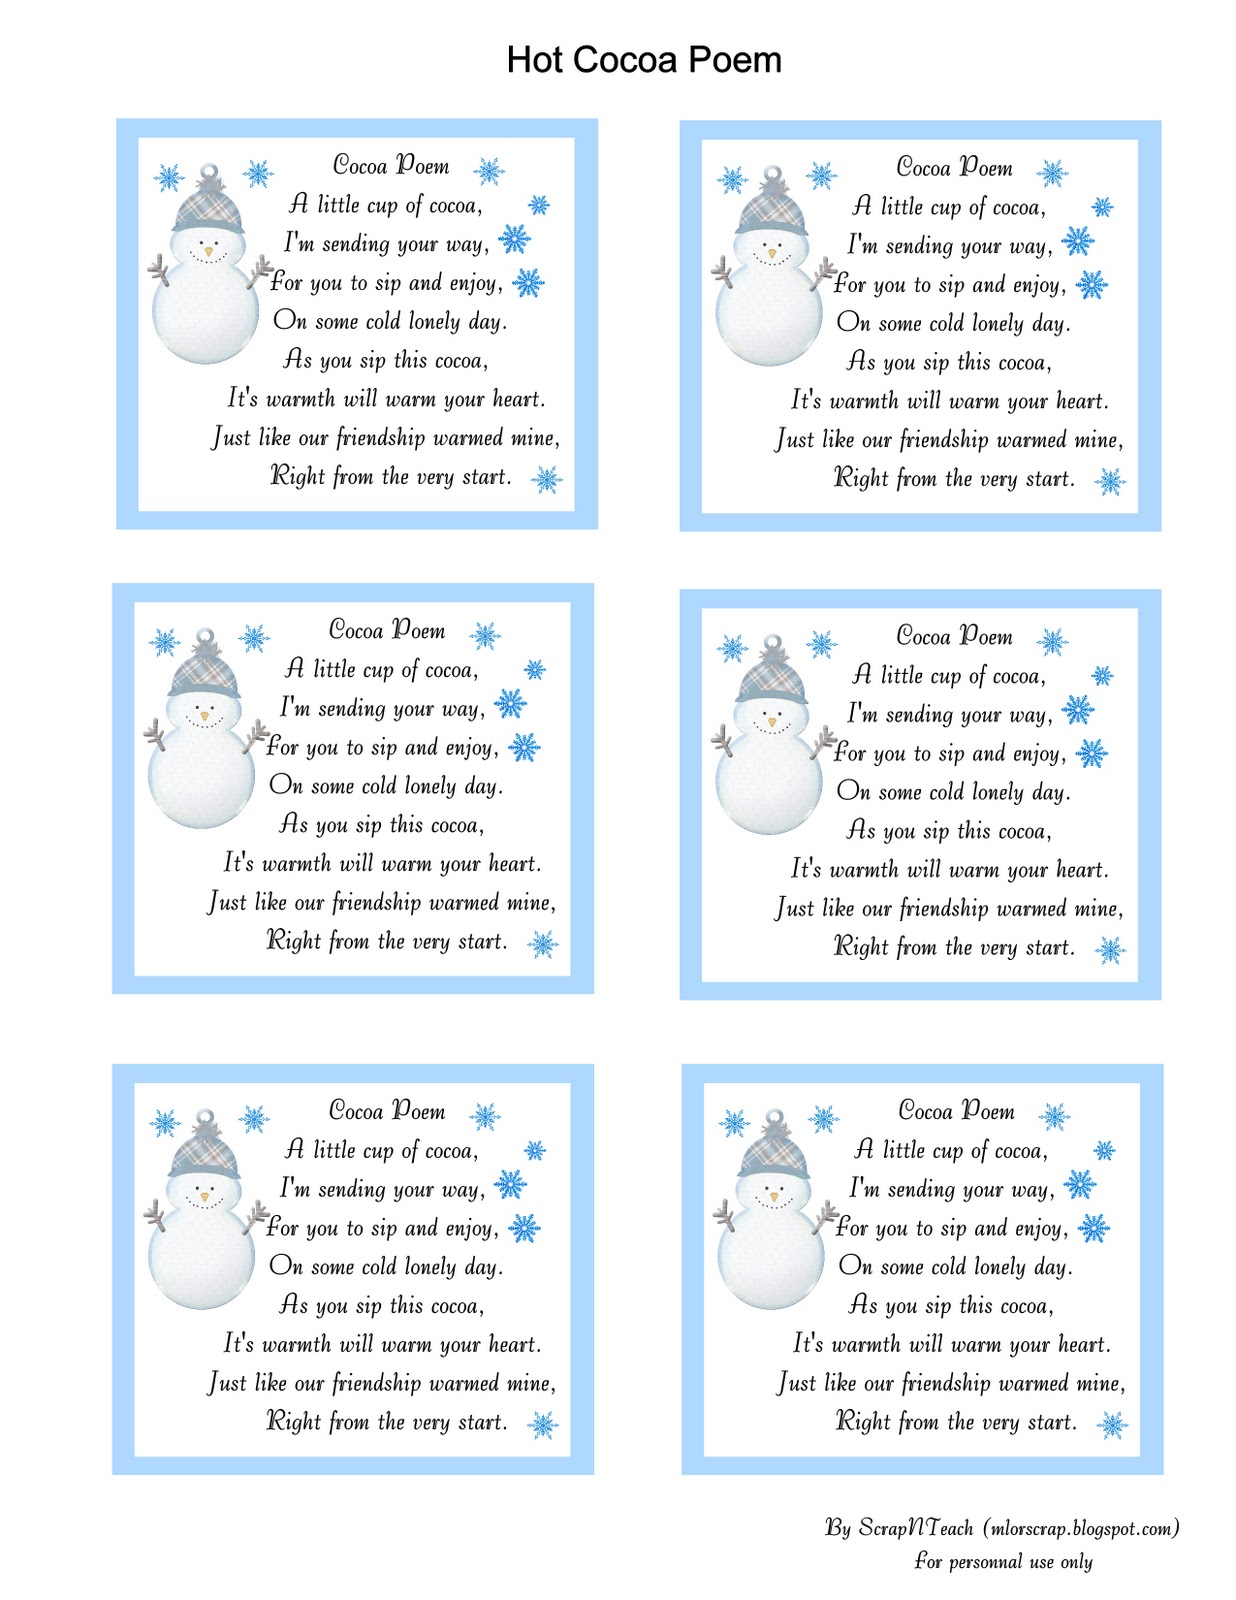 Snowman-Hot-Chocolate-Poem Hot Chocolate Poem | Search Results ...